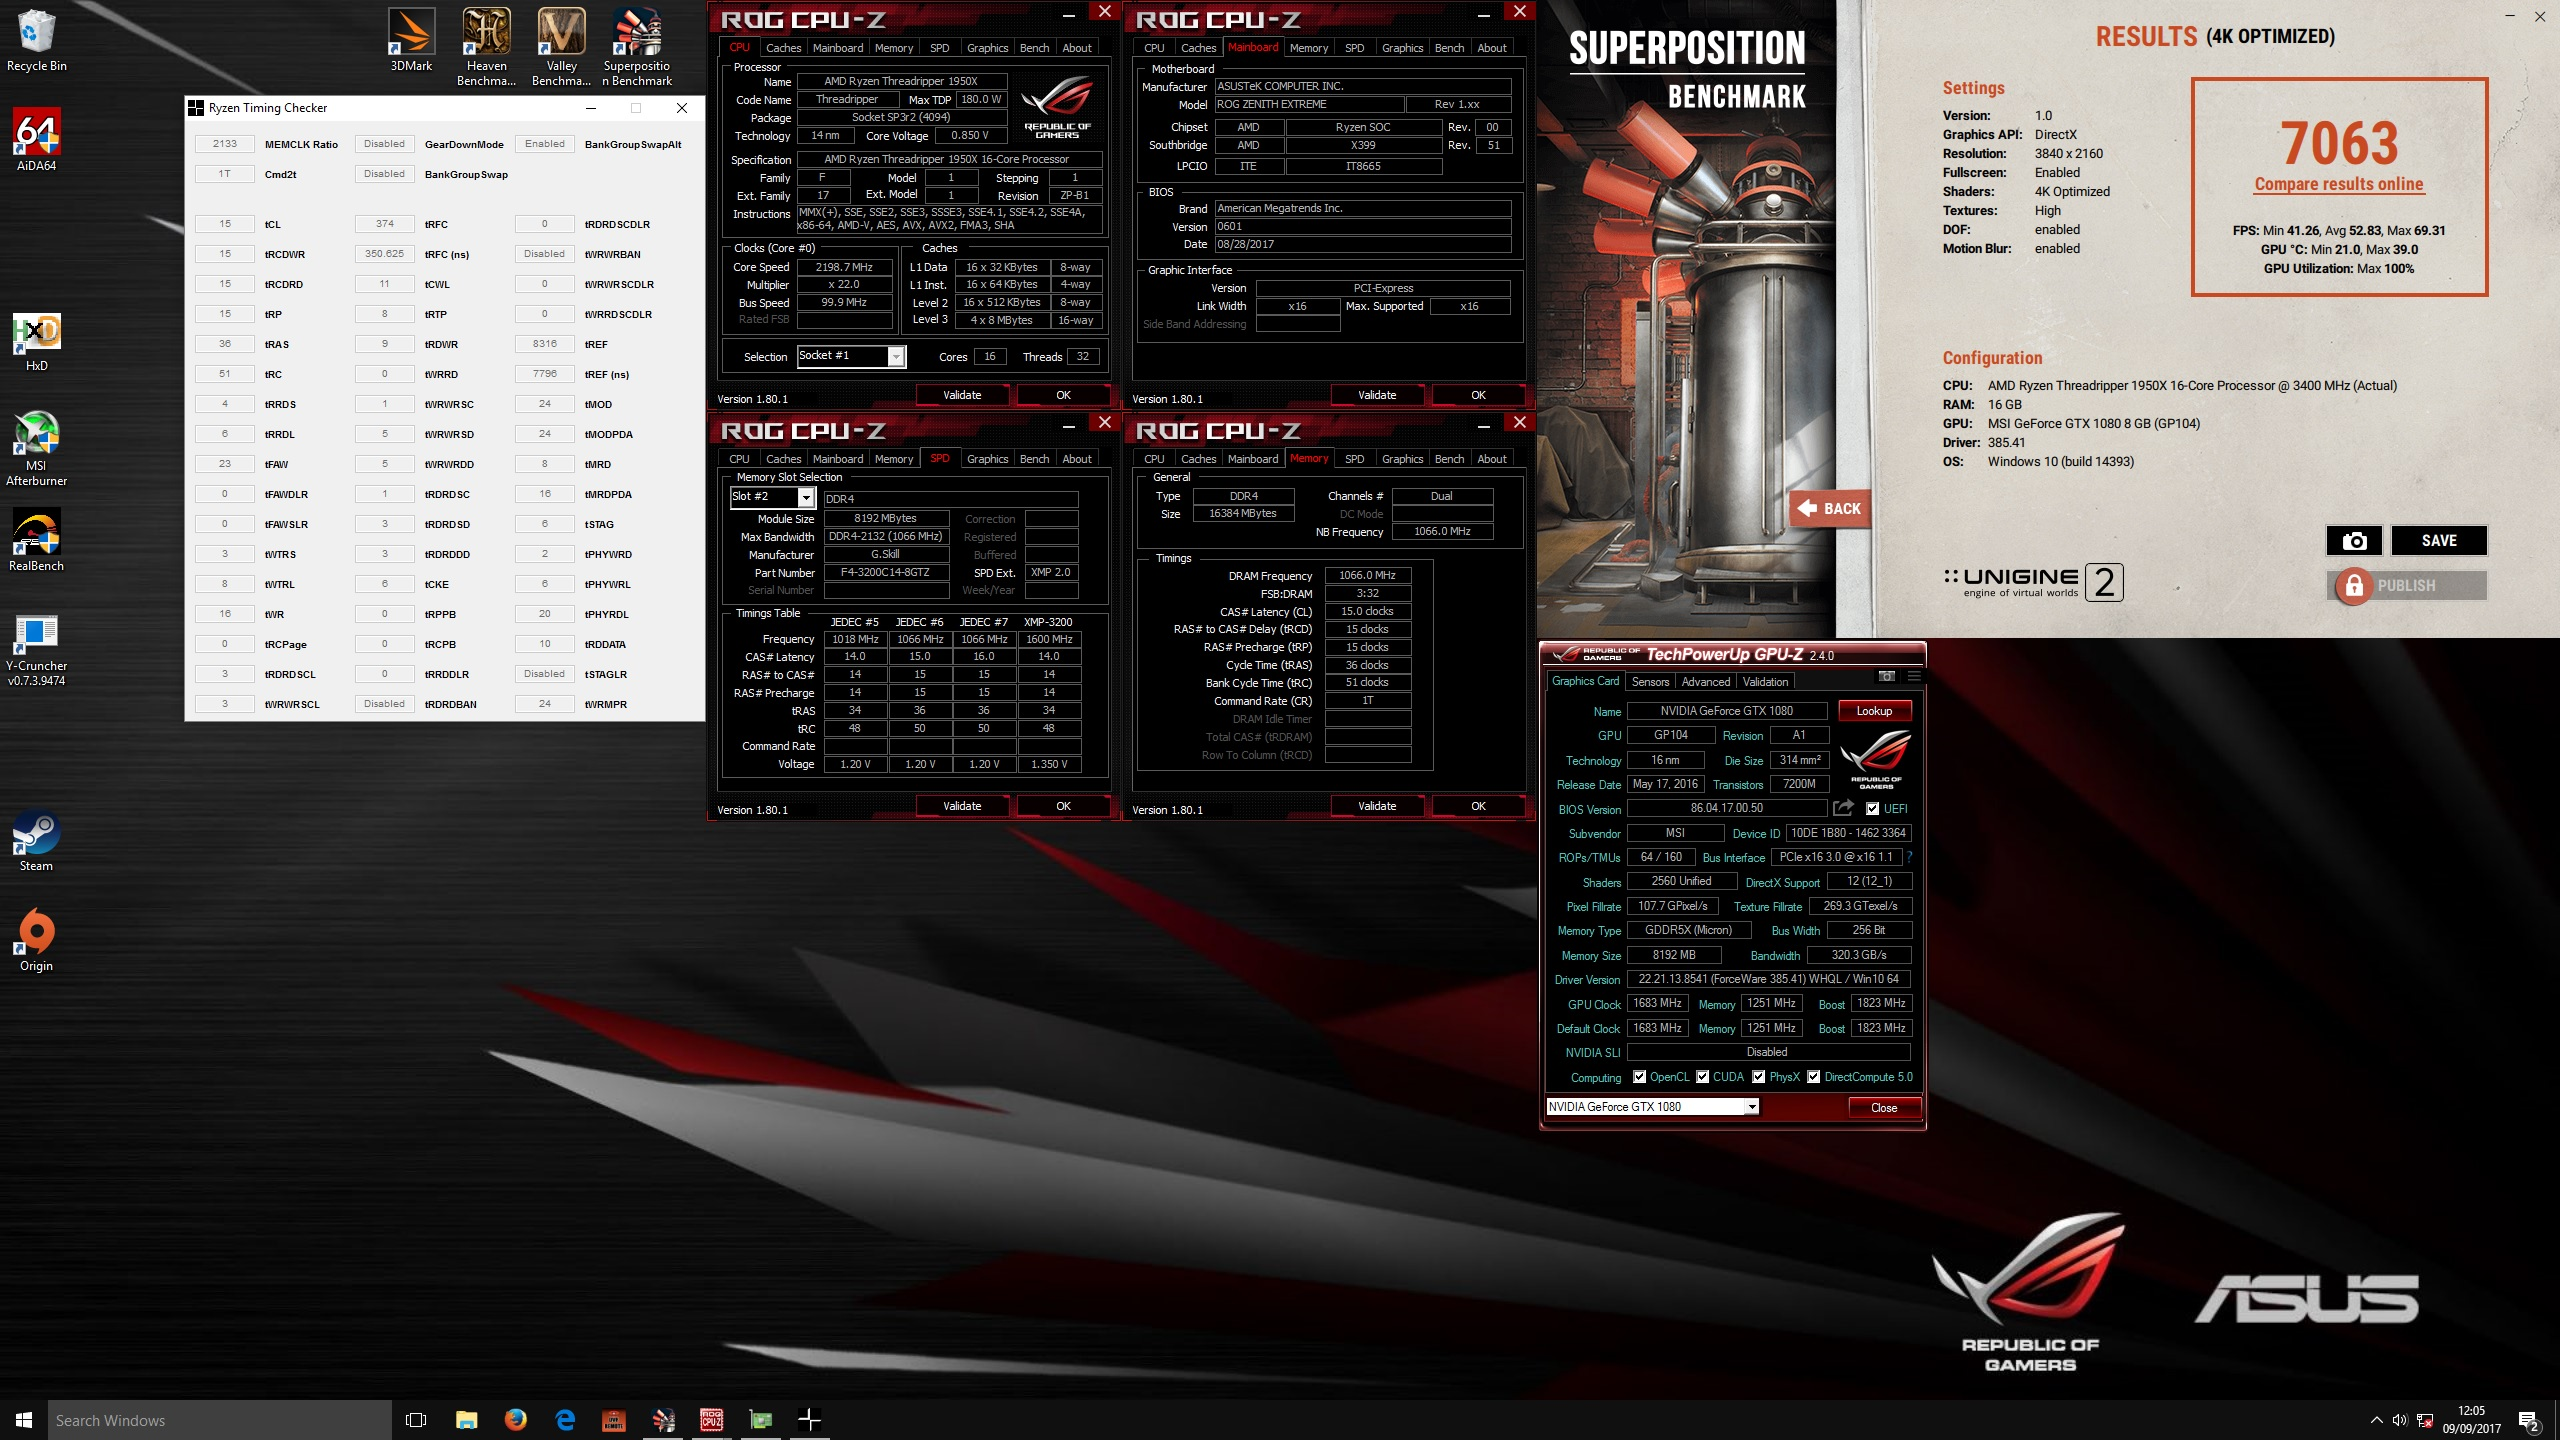 Official] Vega Frontier / RX Vega Owners Thread - Page 179